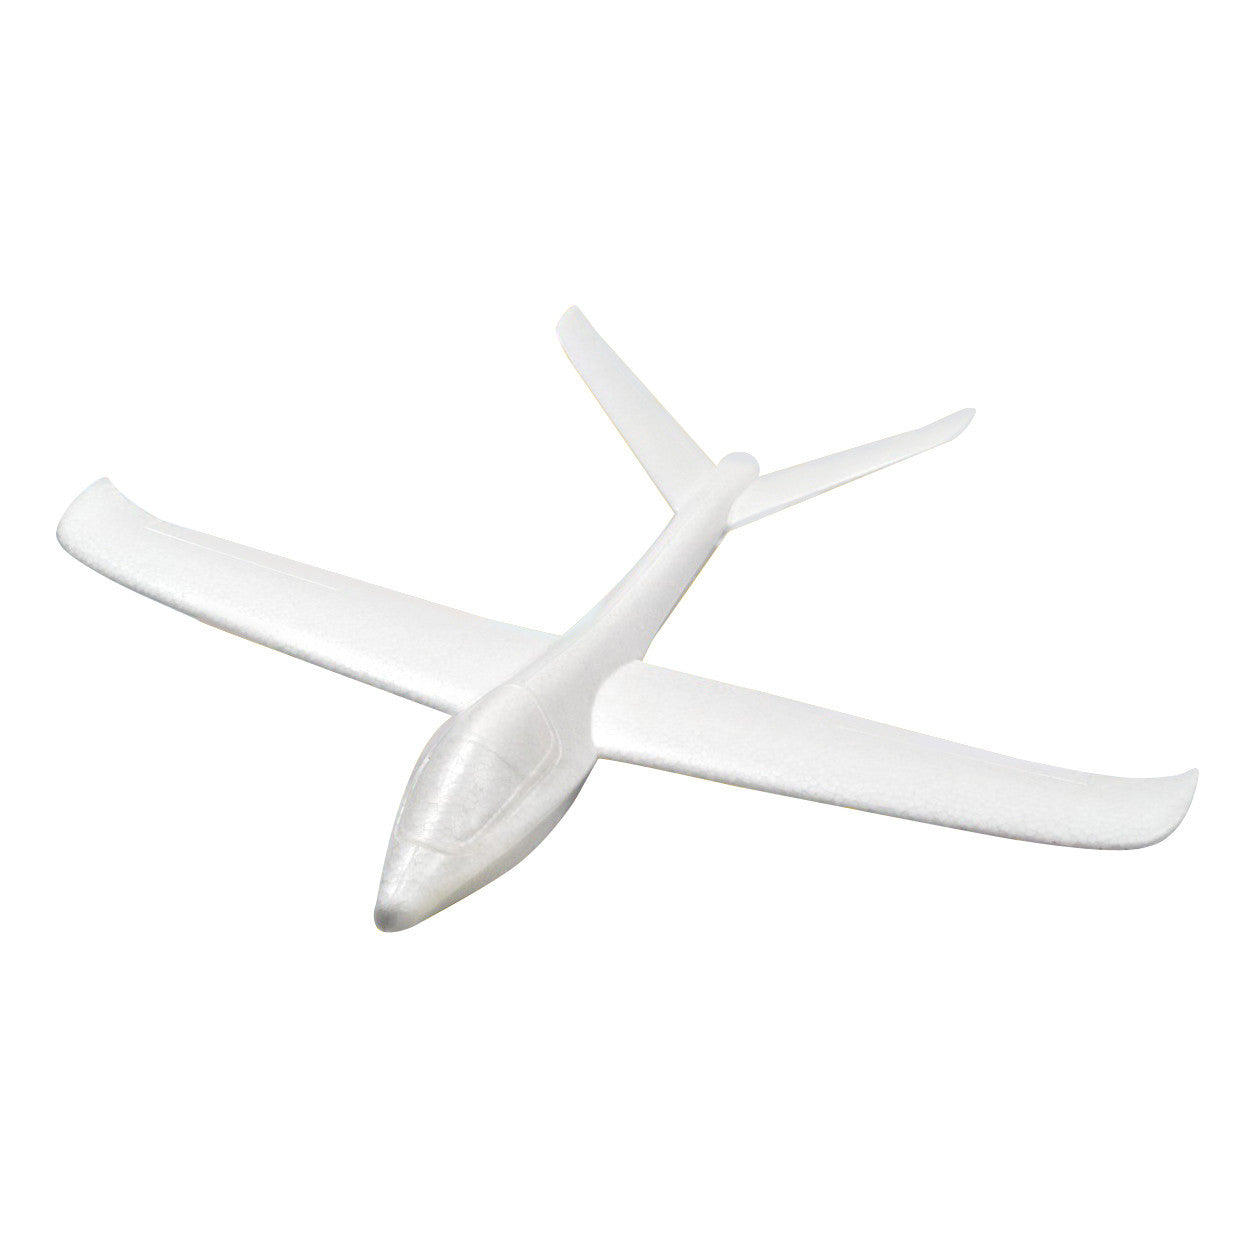 Paint-N-Fly Plane Glider and Paint Kit Tornado Model - Off The Wall Toys and Gifts